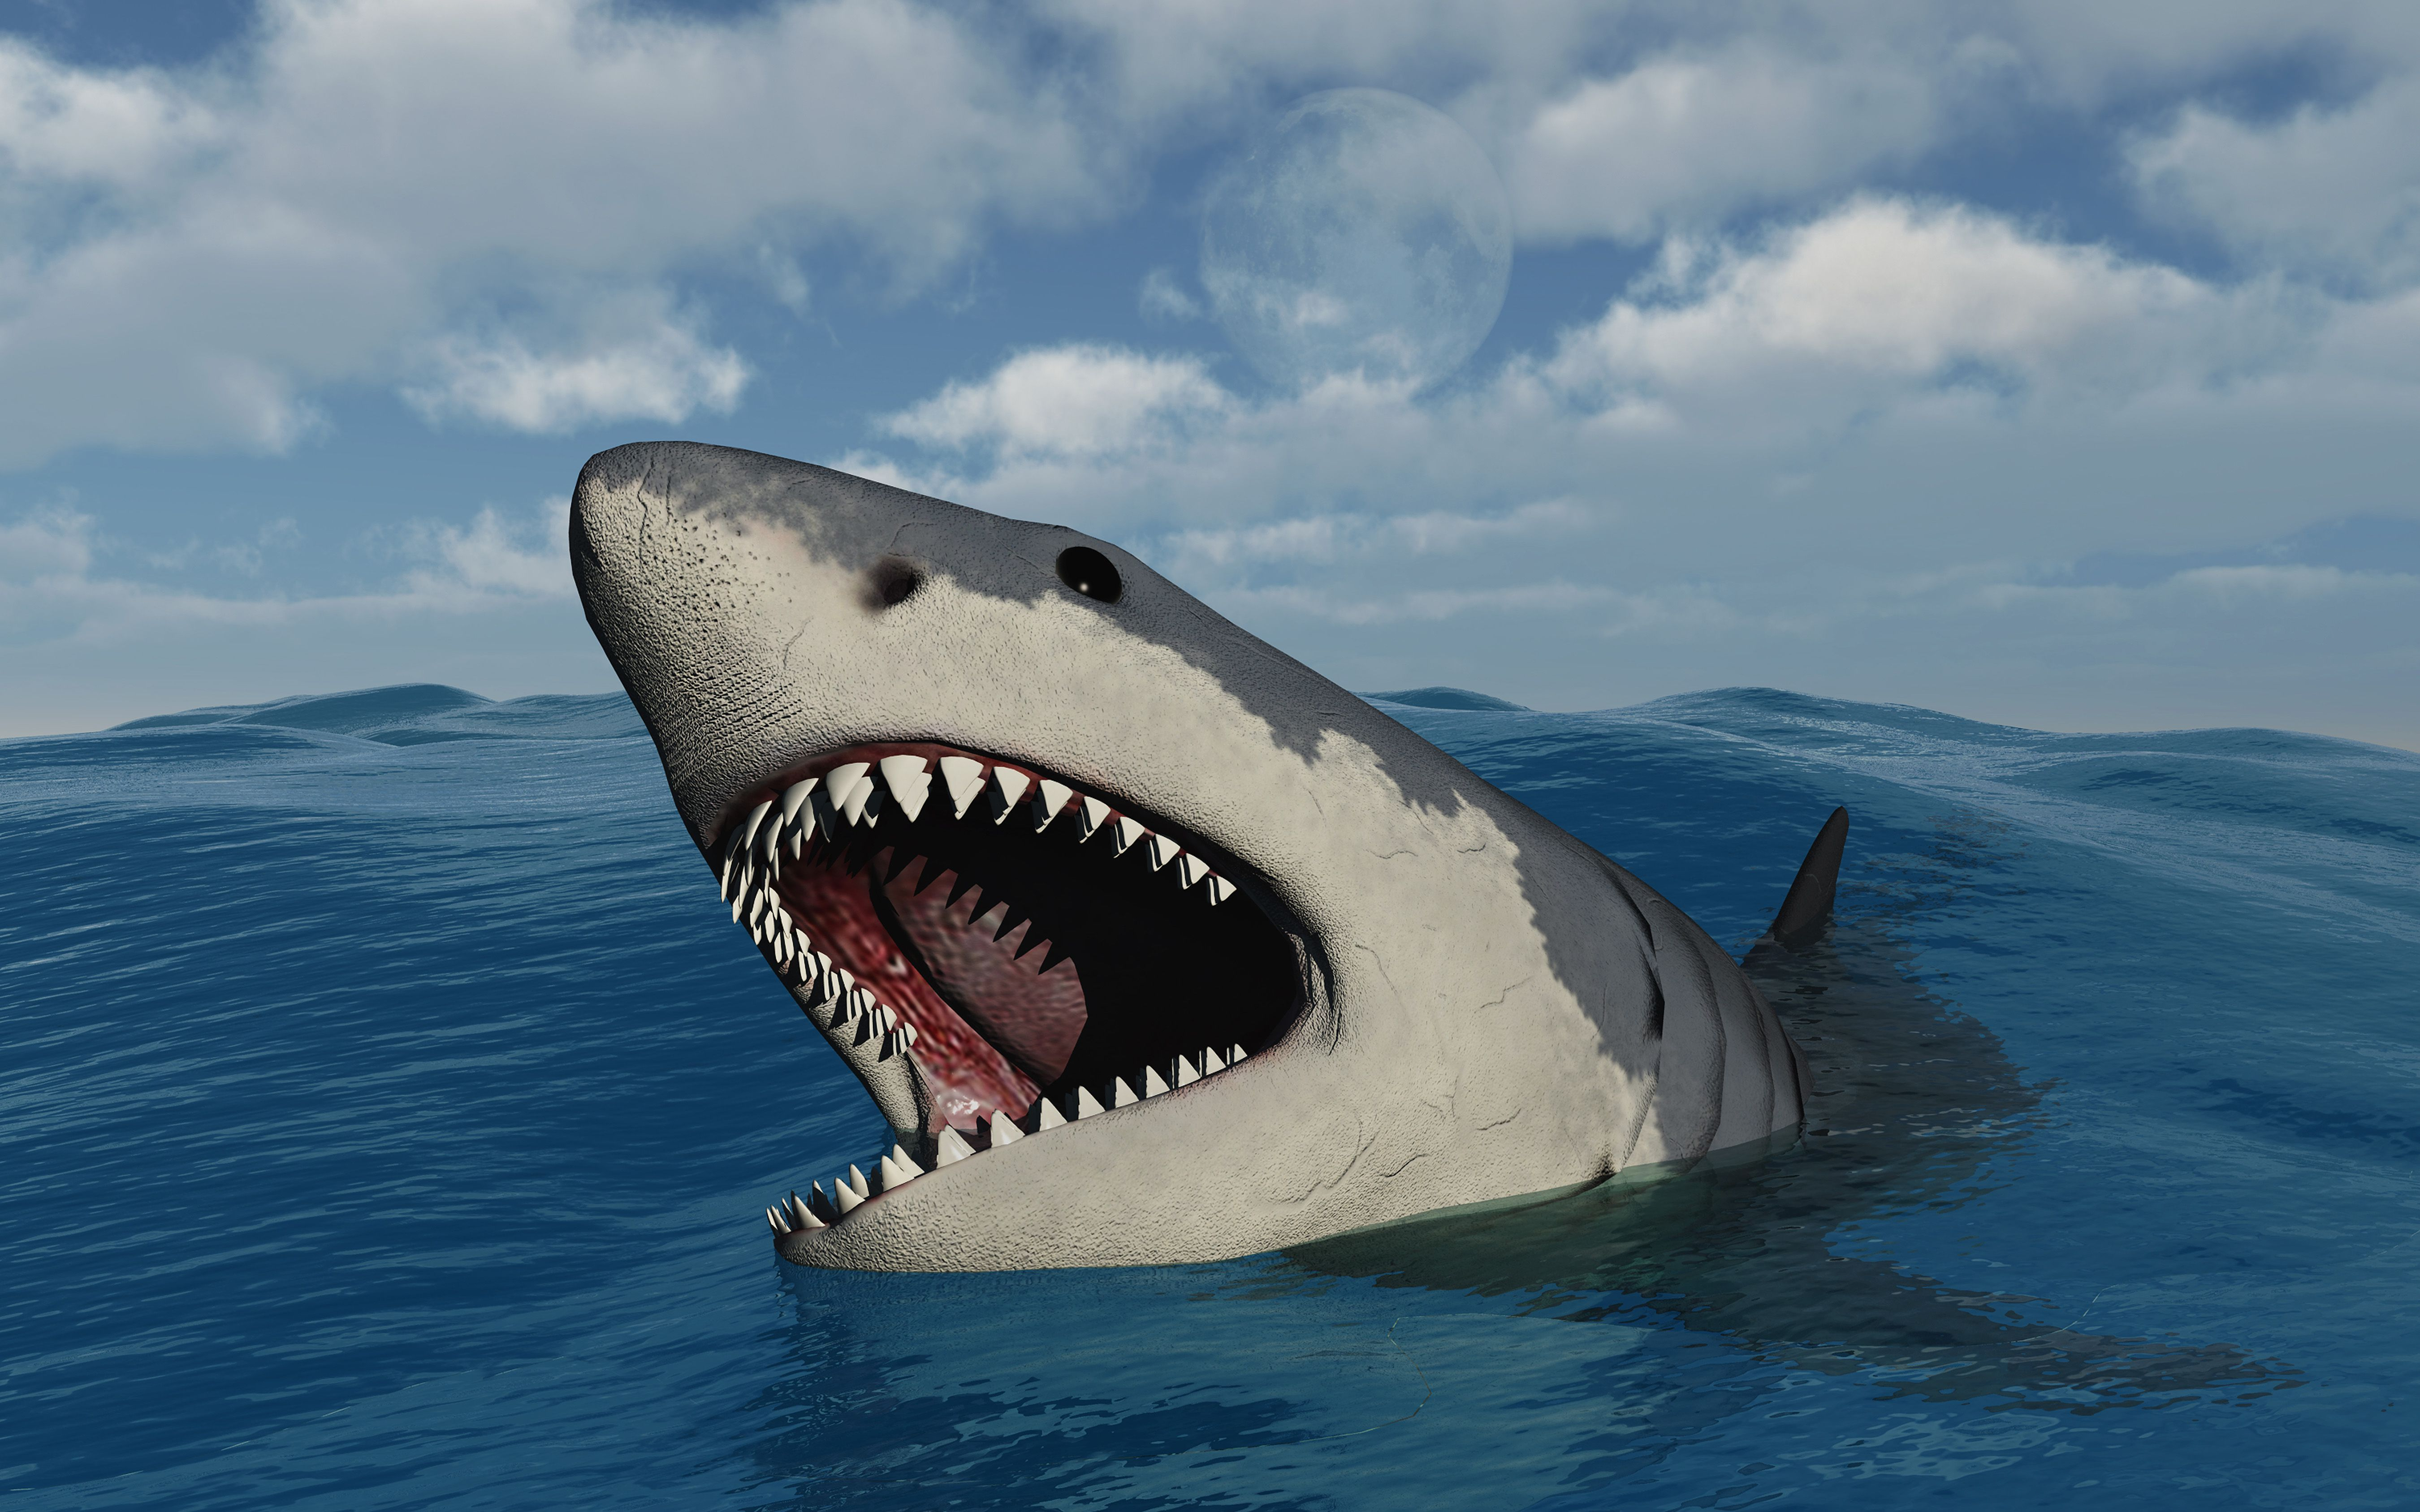 11 Facts About Megalodon, the Giant Prehistoric Shark